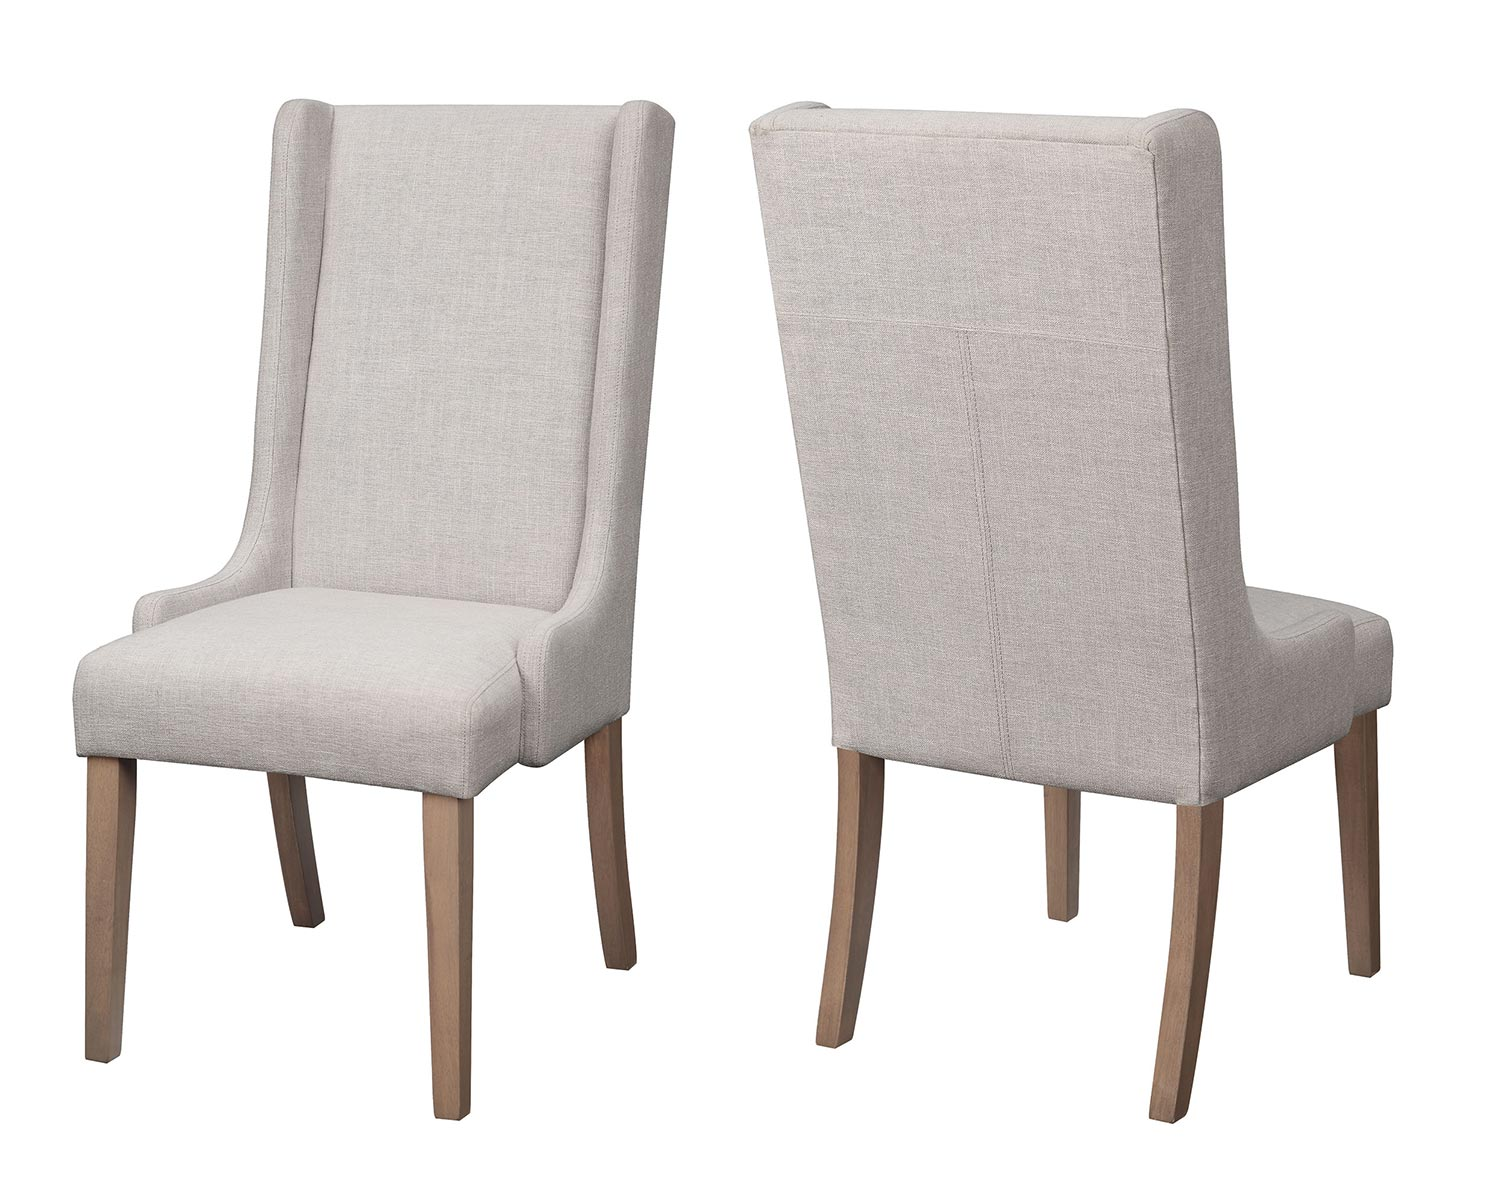 chair cfm set dining parson product morgana master tufted parsons of